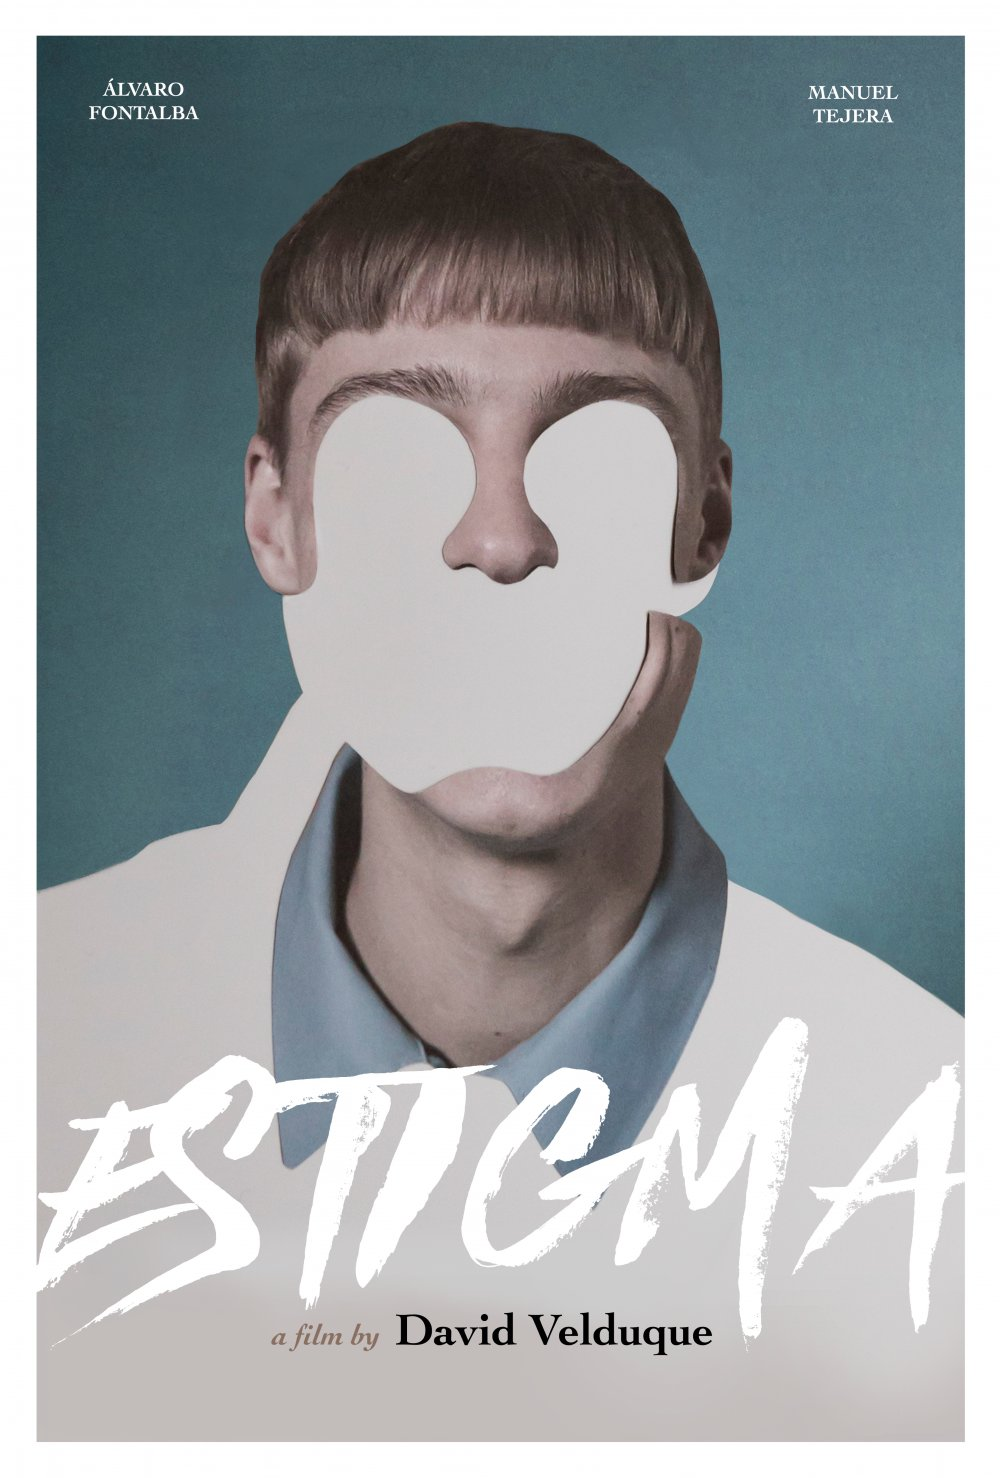 <strong>Estigma</strong> (screening as part of the shorts programme Hook Ups and Downs) – A Friday night hook-up turns into something far more disturbing for an apprehensive young man